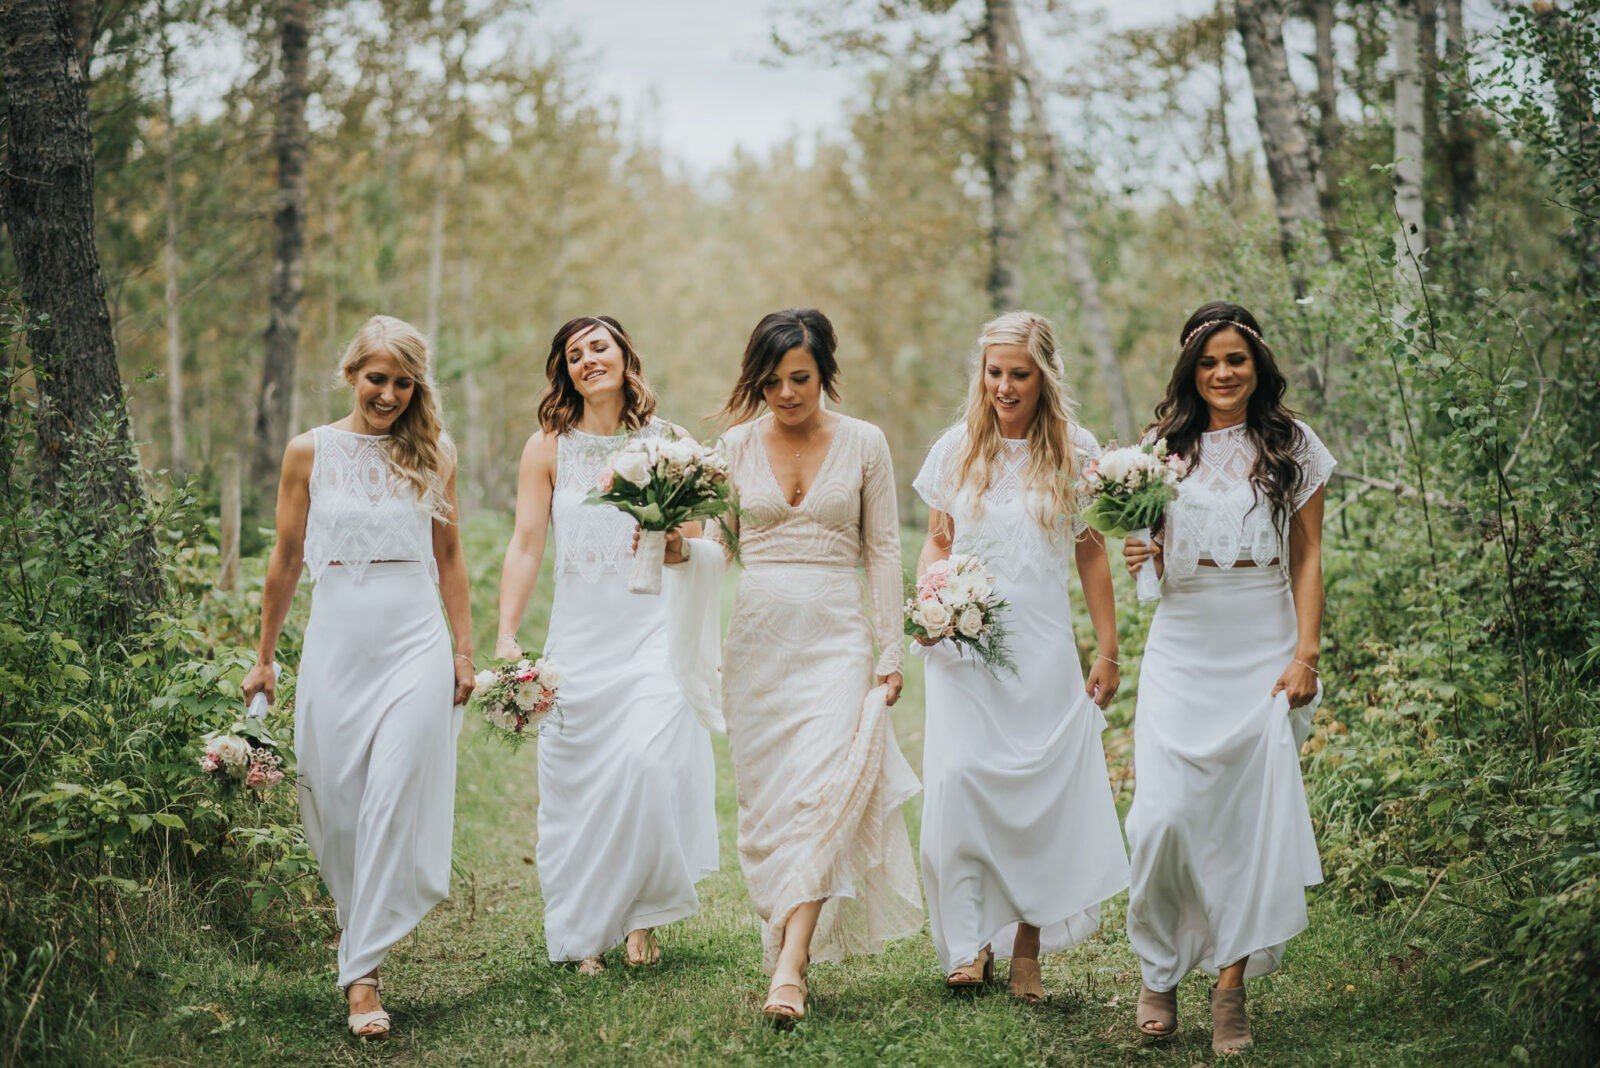 Bridal party walking through forest in custom dresses.